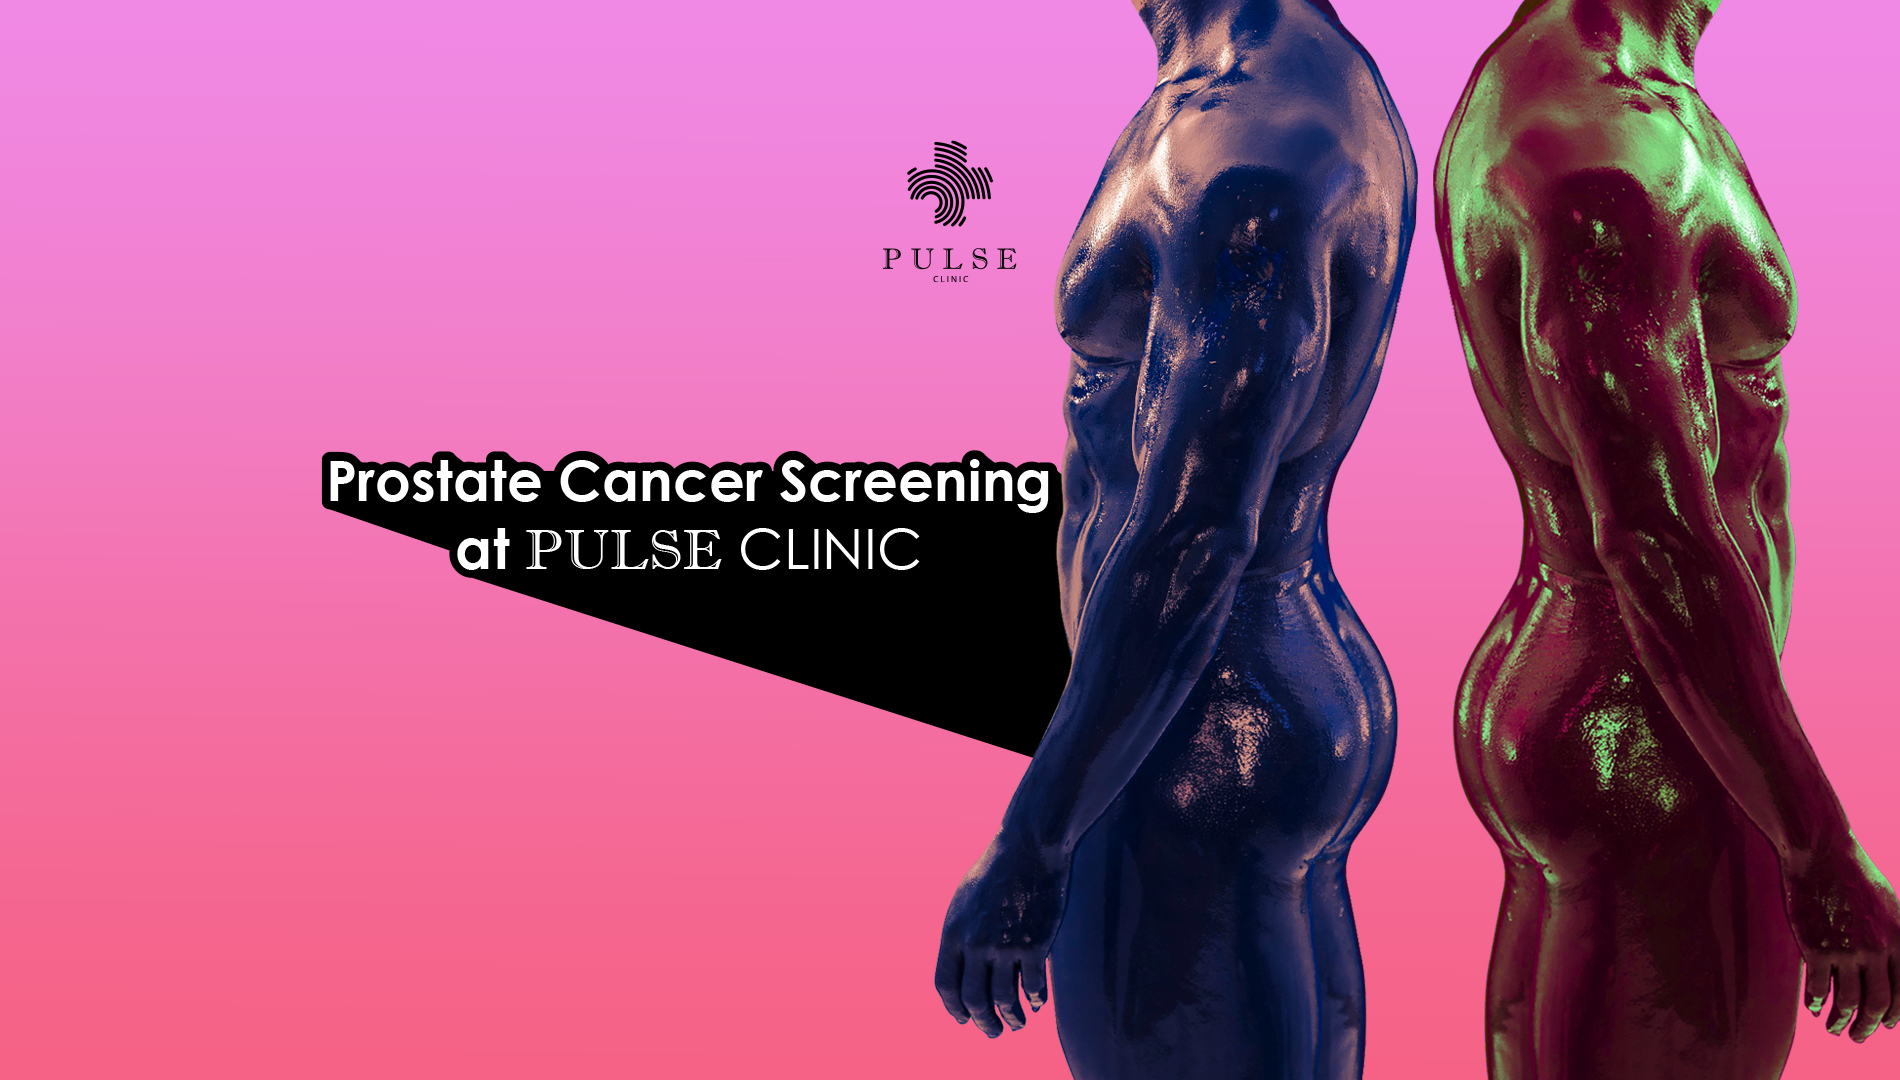 Prostate Cancer Screening at PULSE Clinic